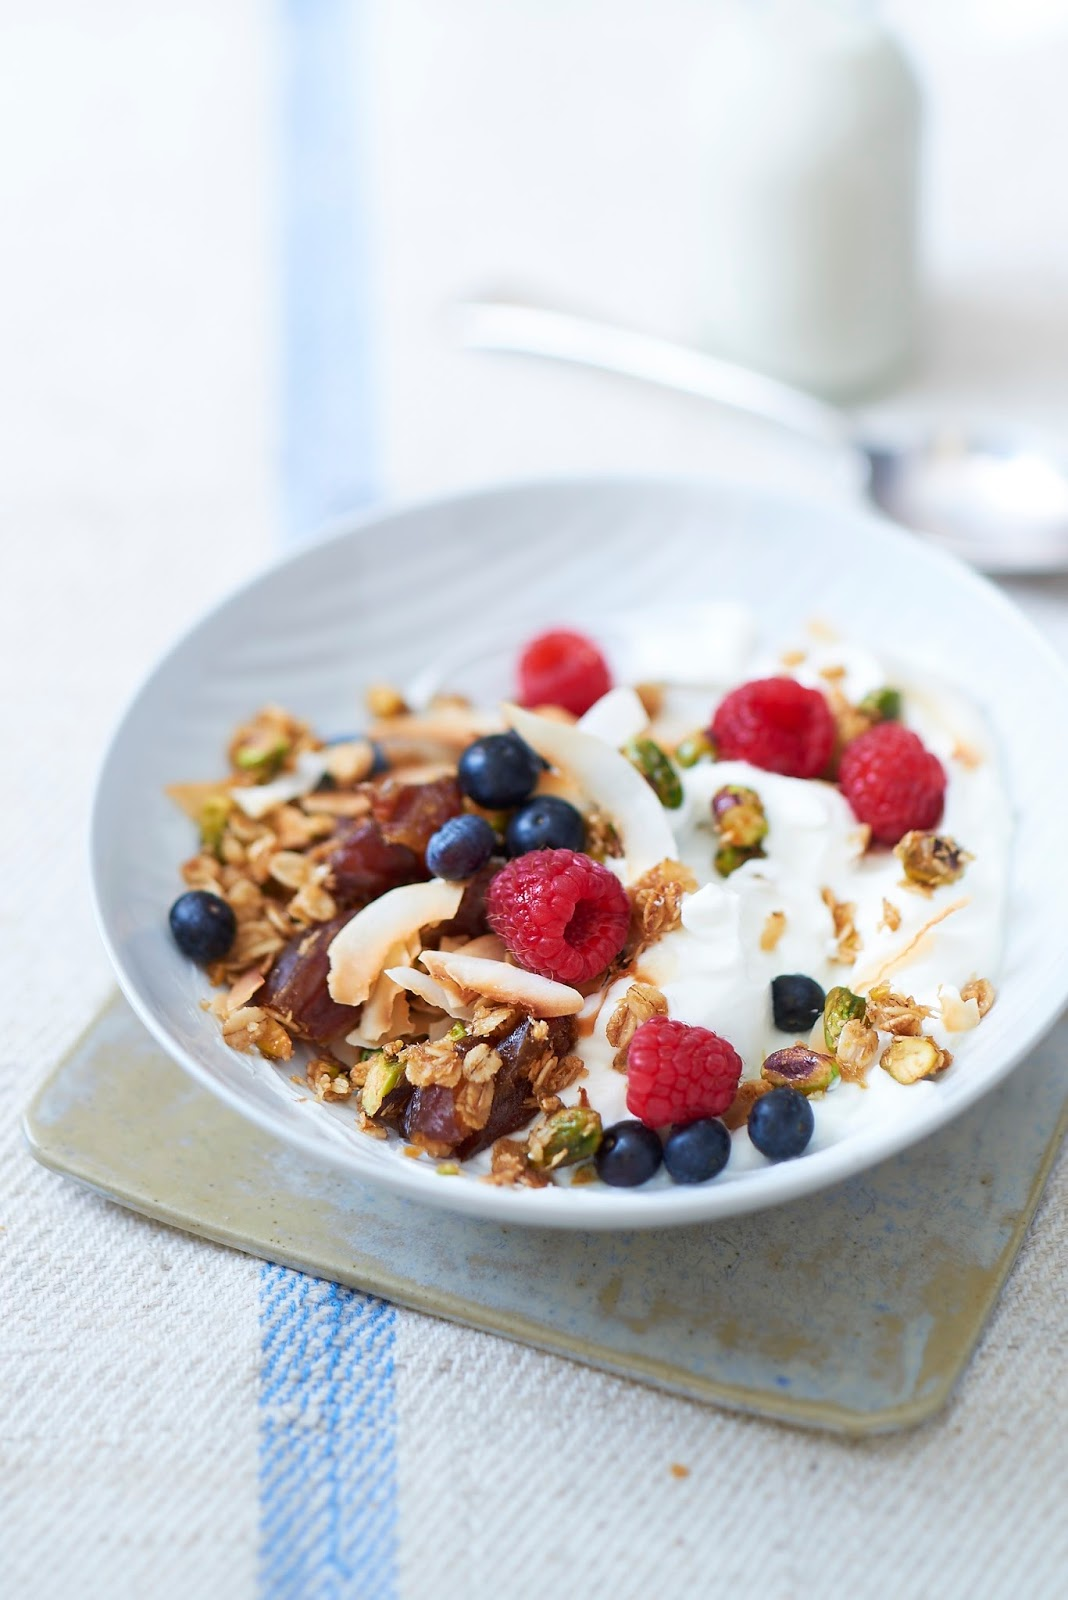 How To Make Lisa Roukin's Moroccan Granola